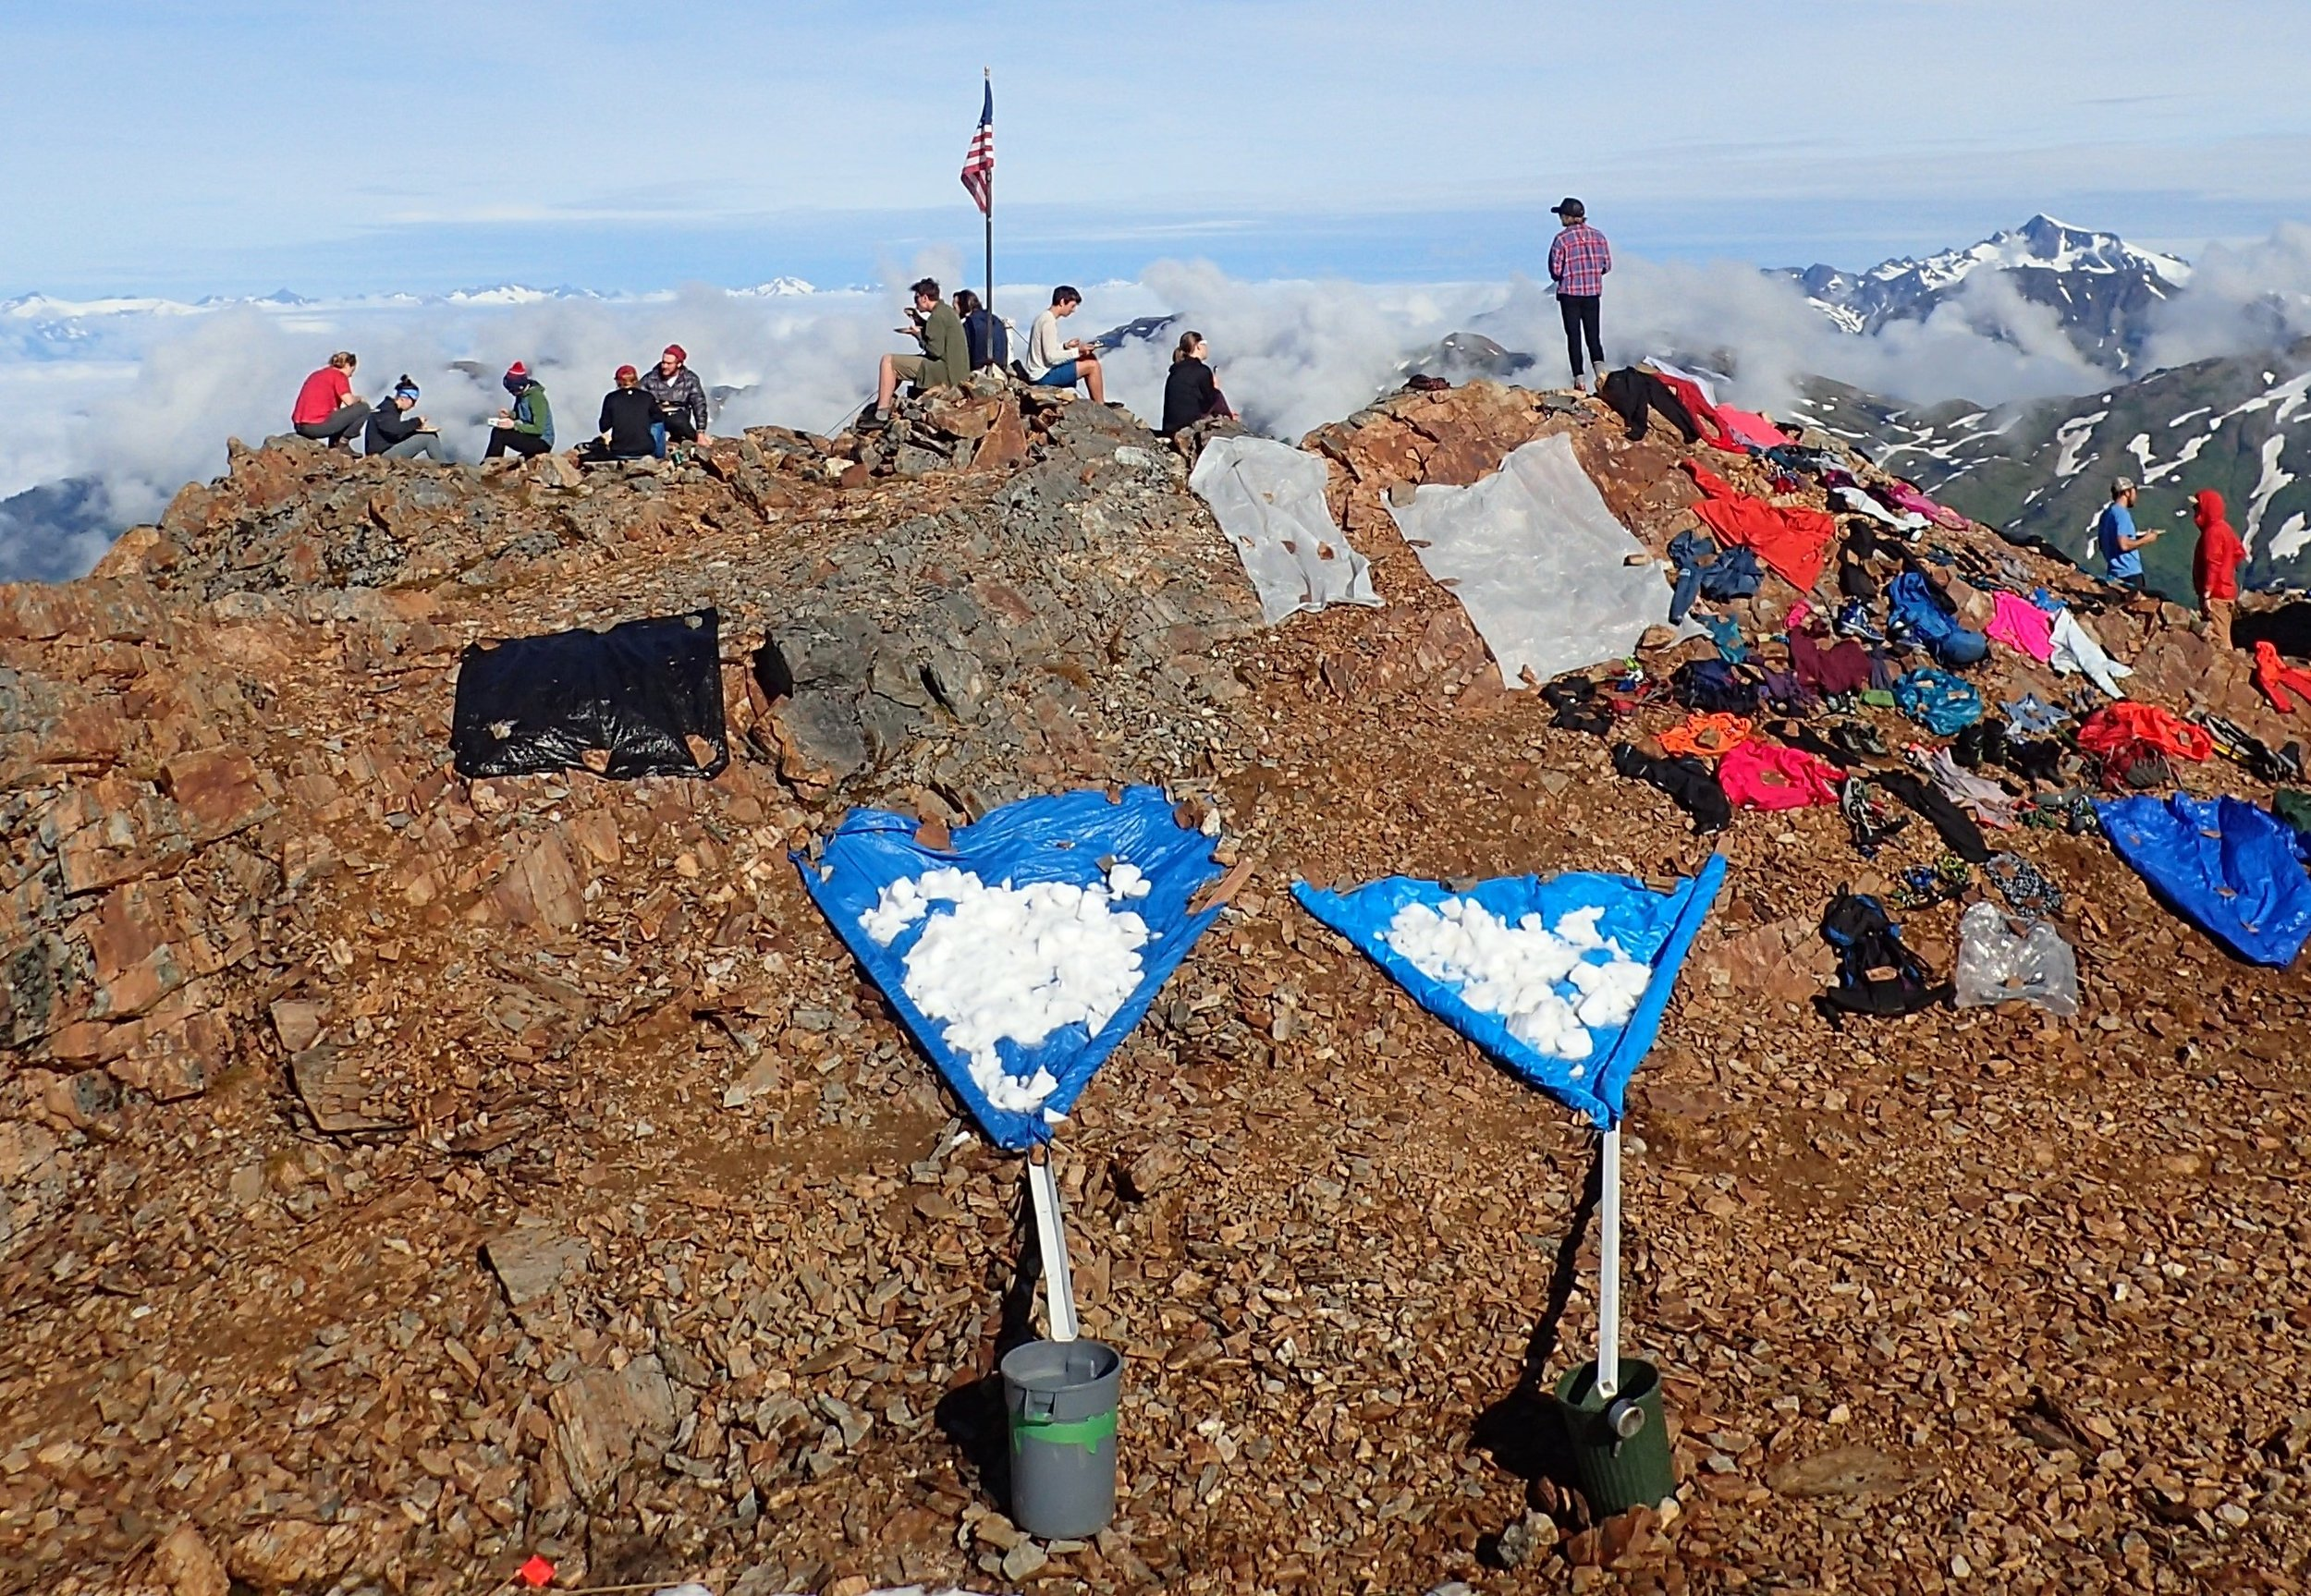 The water supply at Camp 17 is shown above, displaying the tarps onto which we shovel snow from the patch just off the bottom of the photo. A piece of white gutter connects the tarp to the trash barrel, into which the melted water drains. A sauce pan can be seen on the side of the barrel on the right, used to scoop water into buckets for transport. Photo credit: Ann Hill.